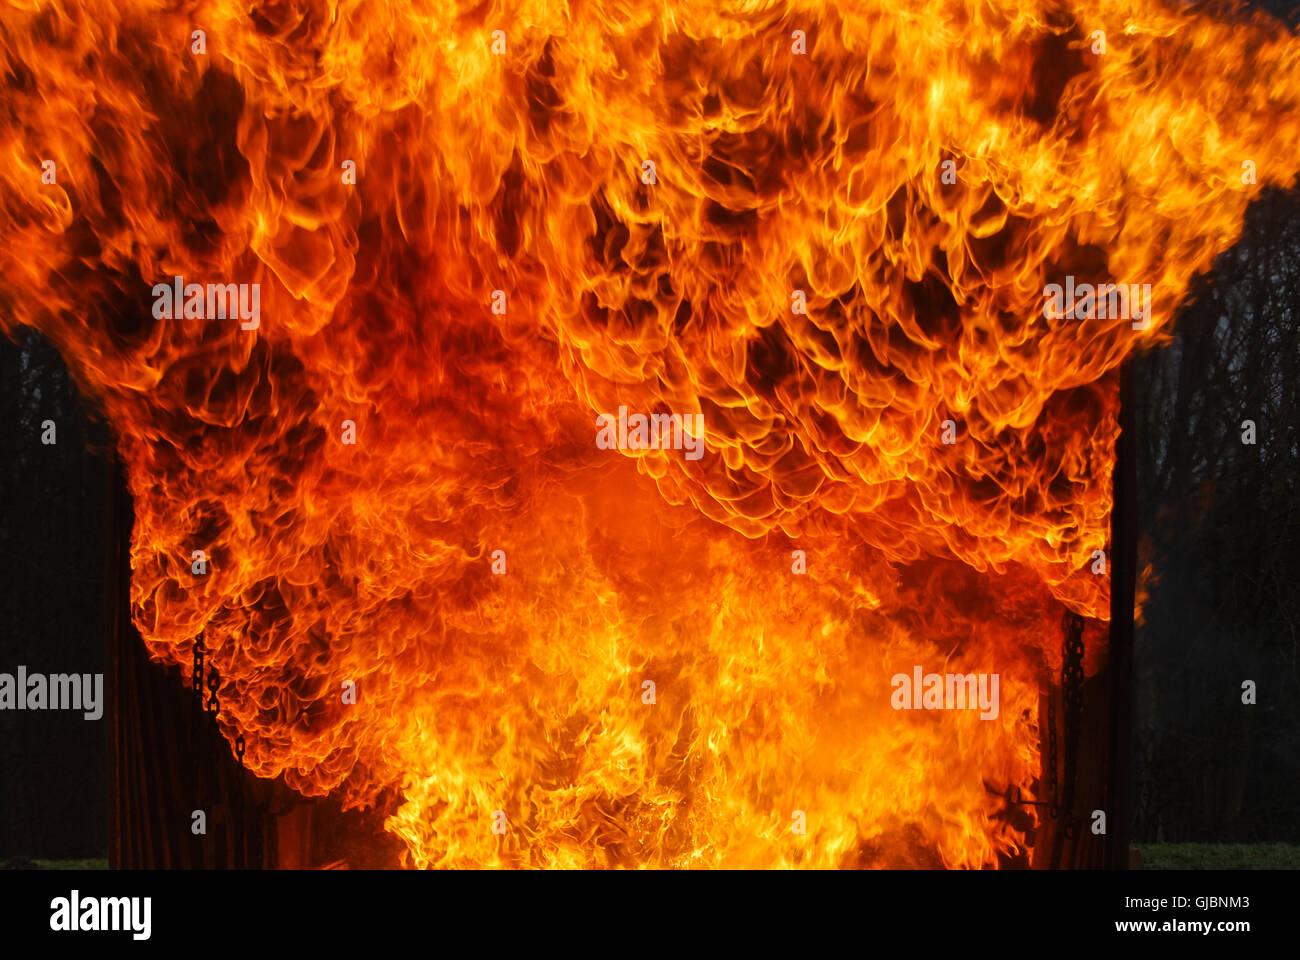 Fire, Flames - Stock Image